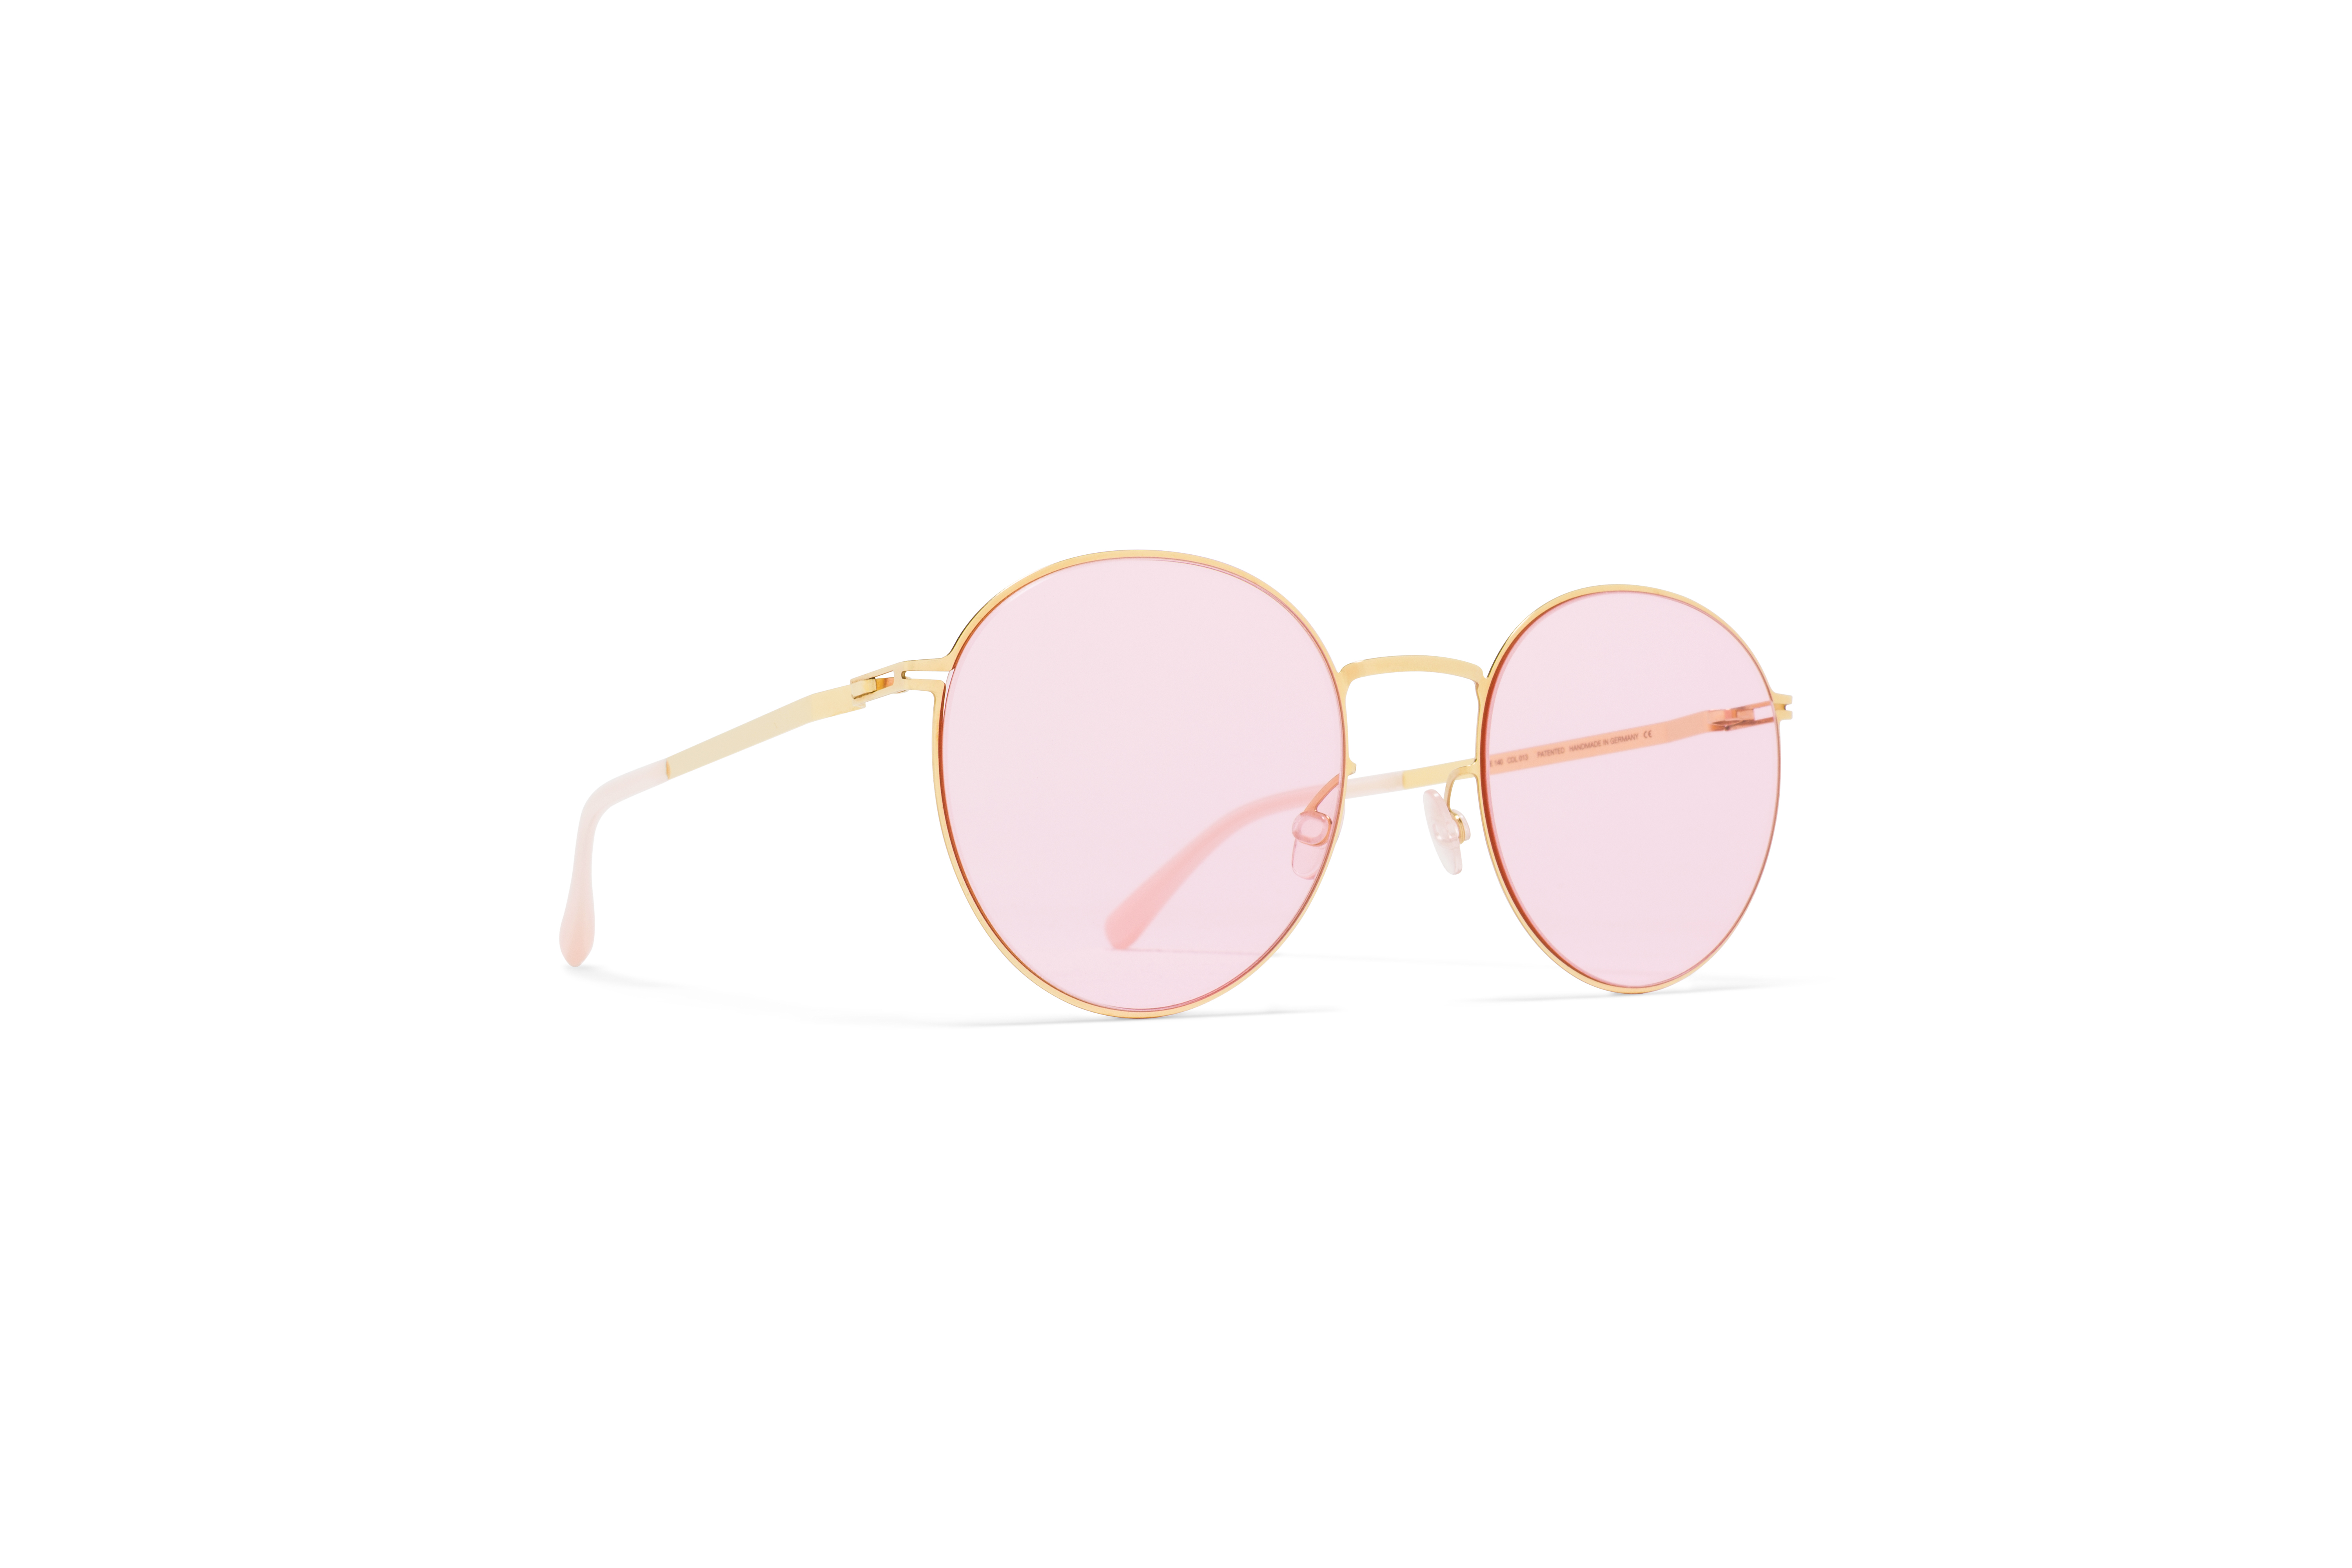 MYKITA Studio Sun Studio Glossy Gold Jelly Pin